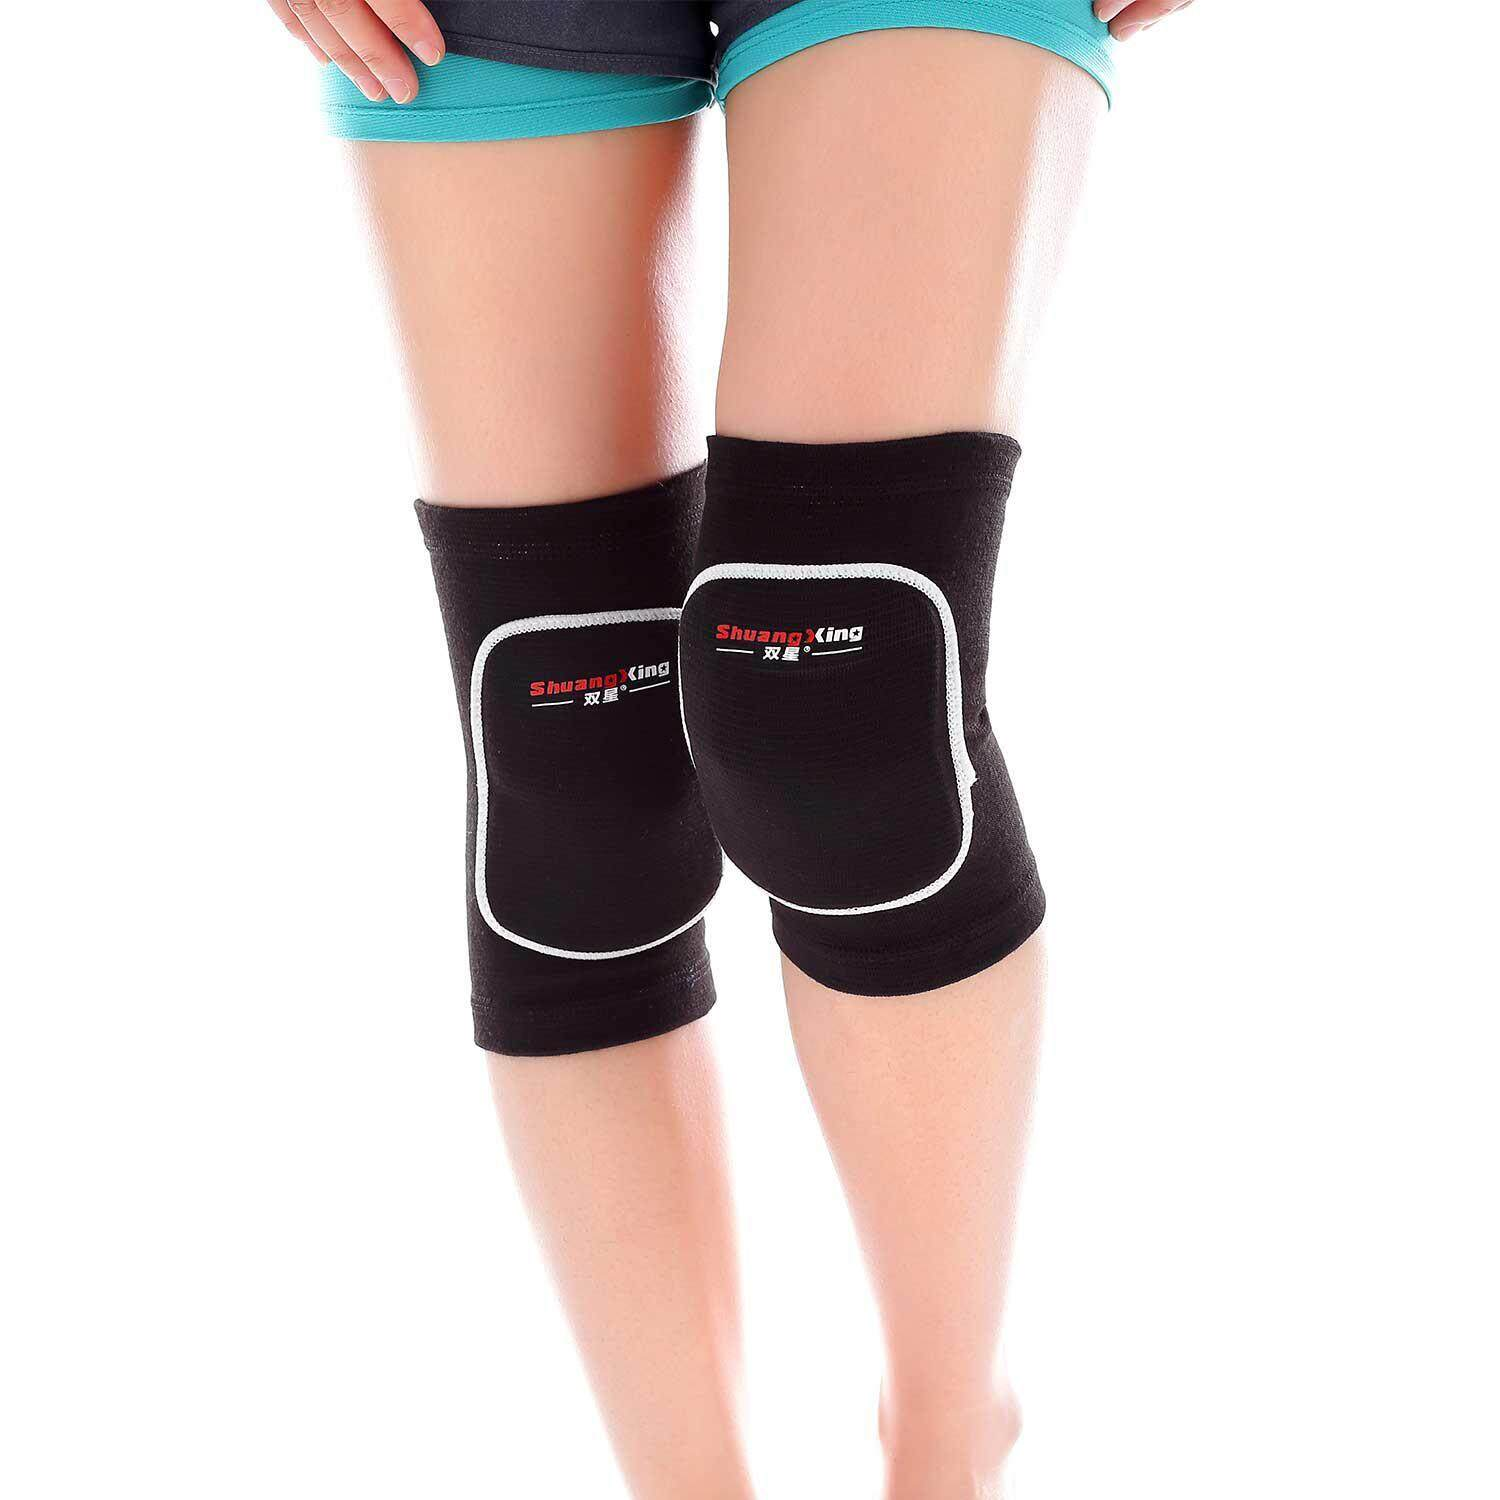 e20632f19c OutFlety Knee Pads Protective Thick Sponge Anti-Collision Kneepads Dance Volleyball  Knee Pads Support Sleeve